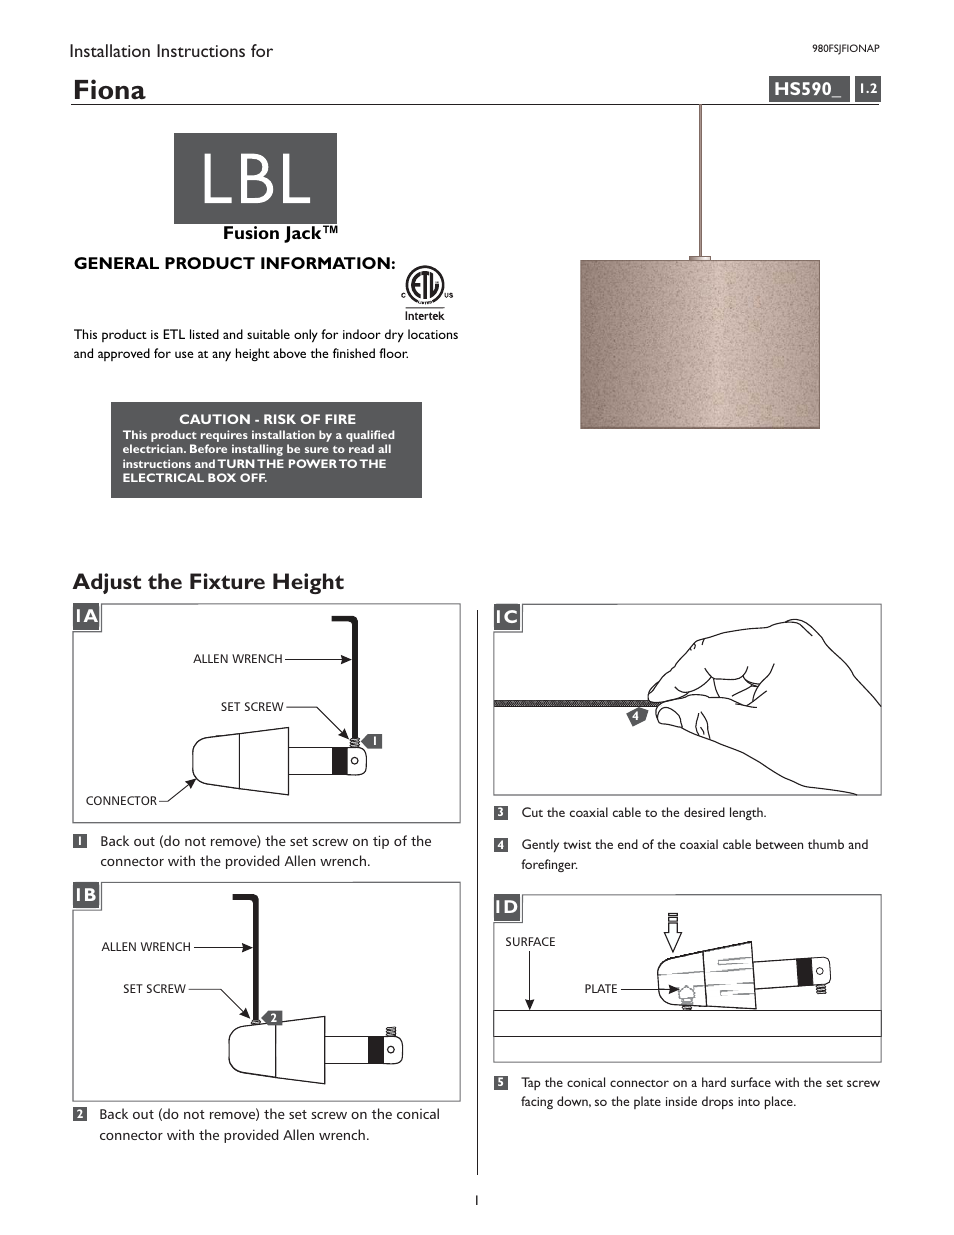 lbl lighting fiona p user manual 4 pages